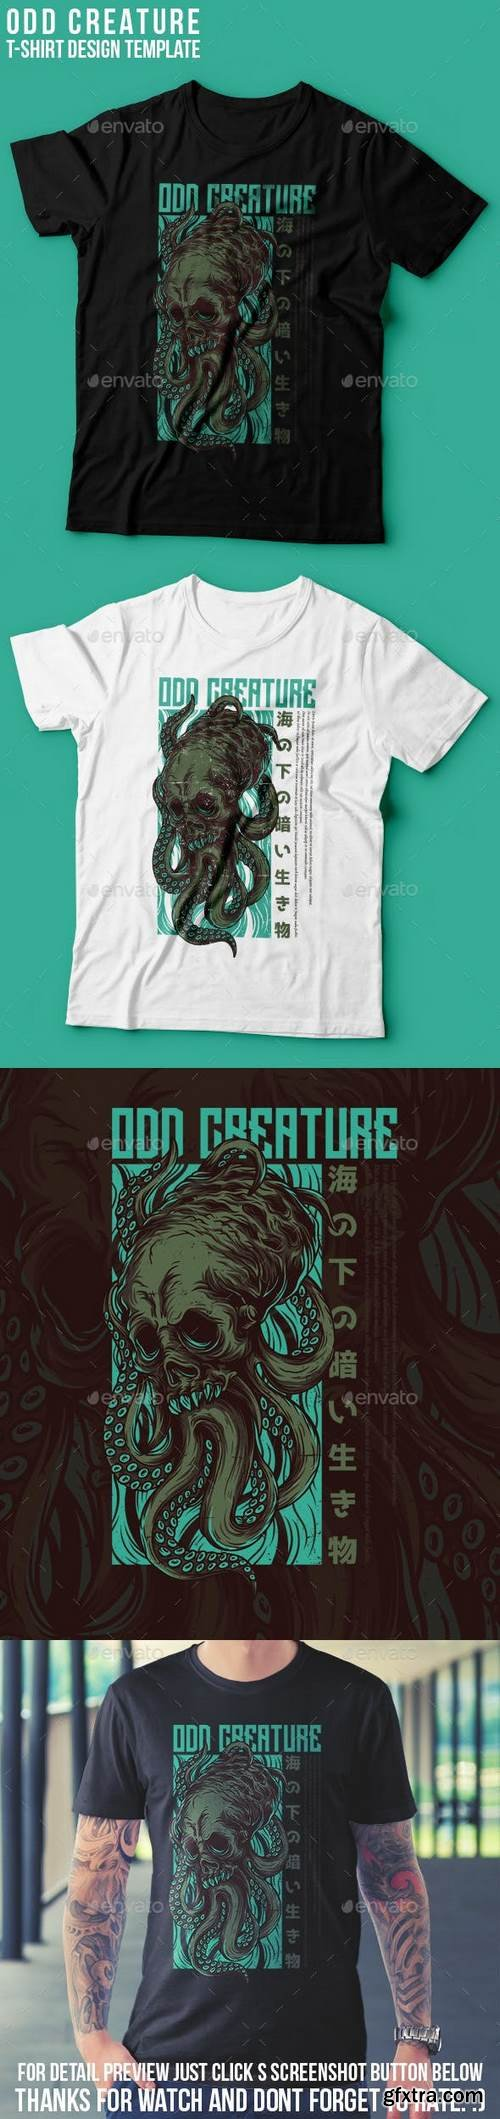 Graphicriver - Odd Creature T-Shirt Design 22939374